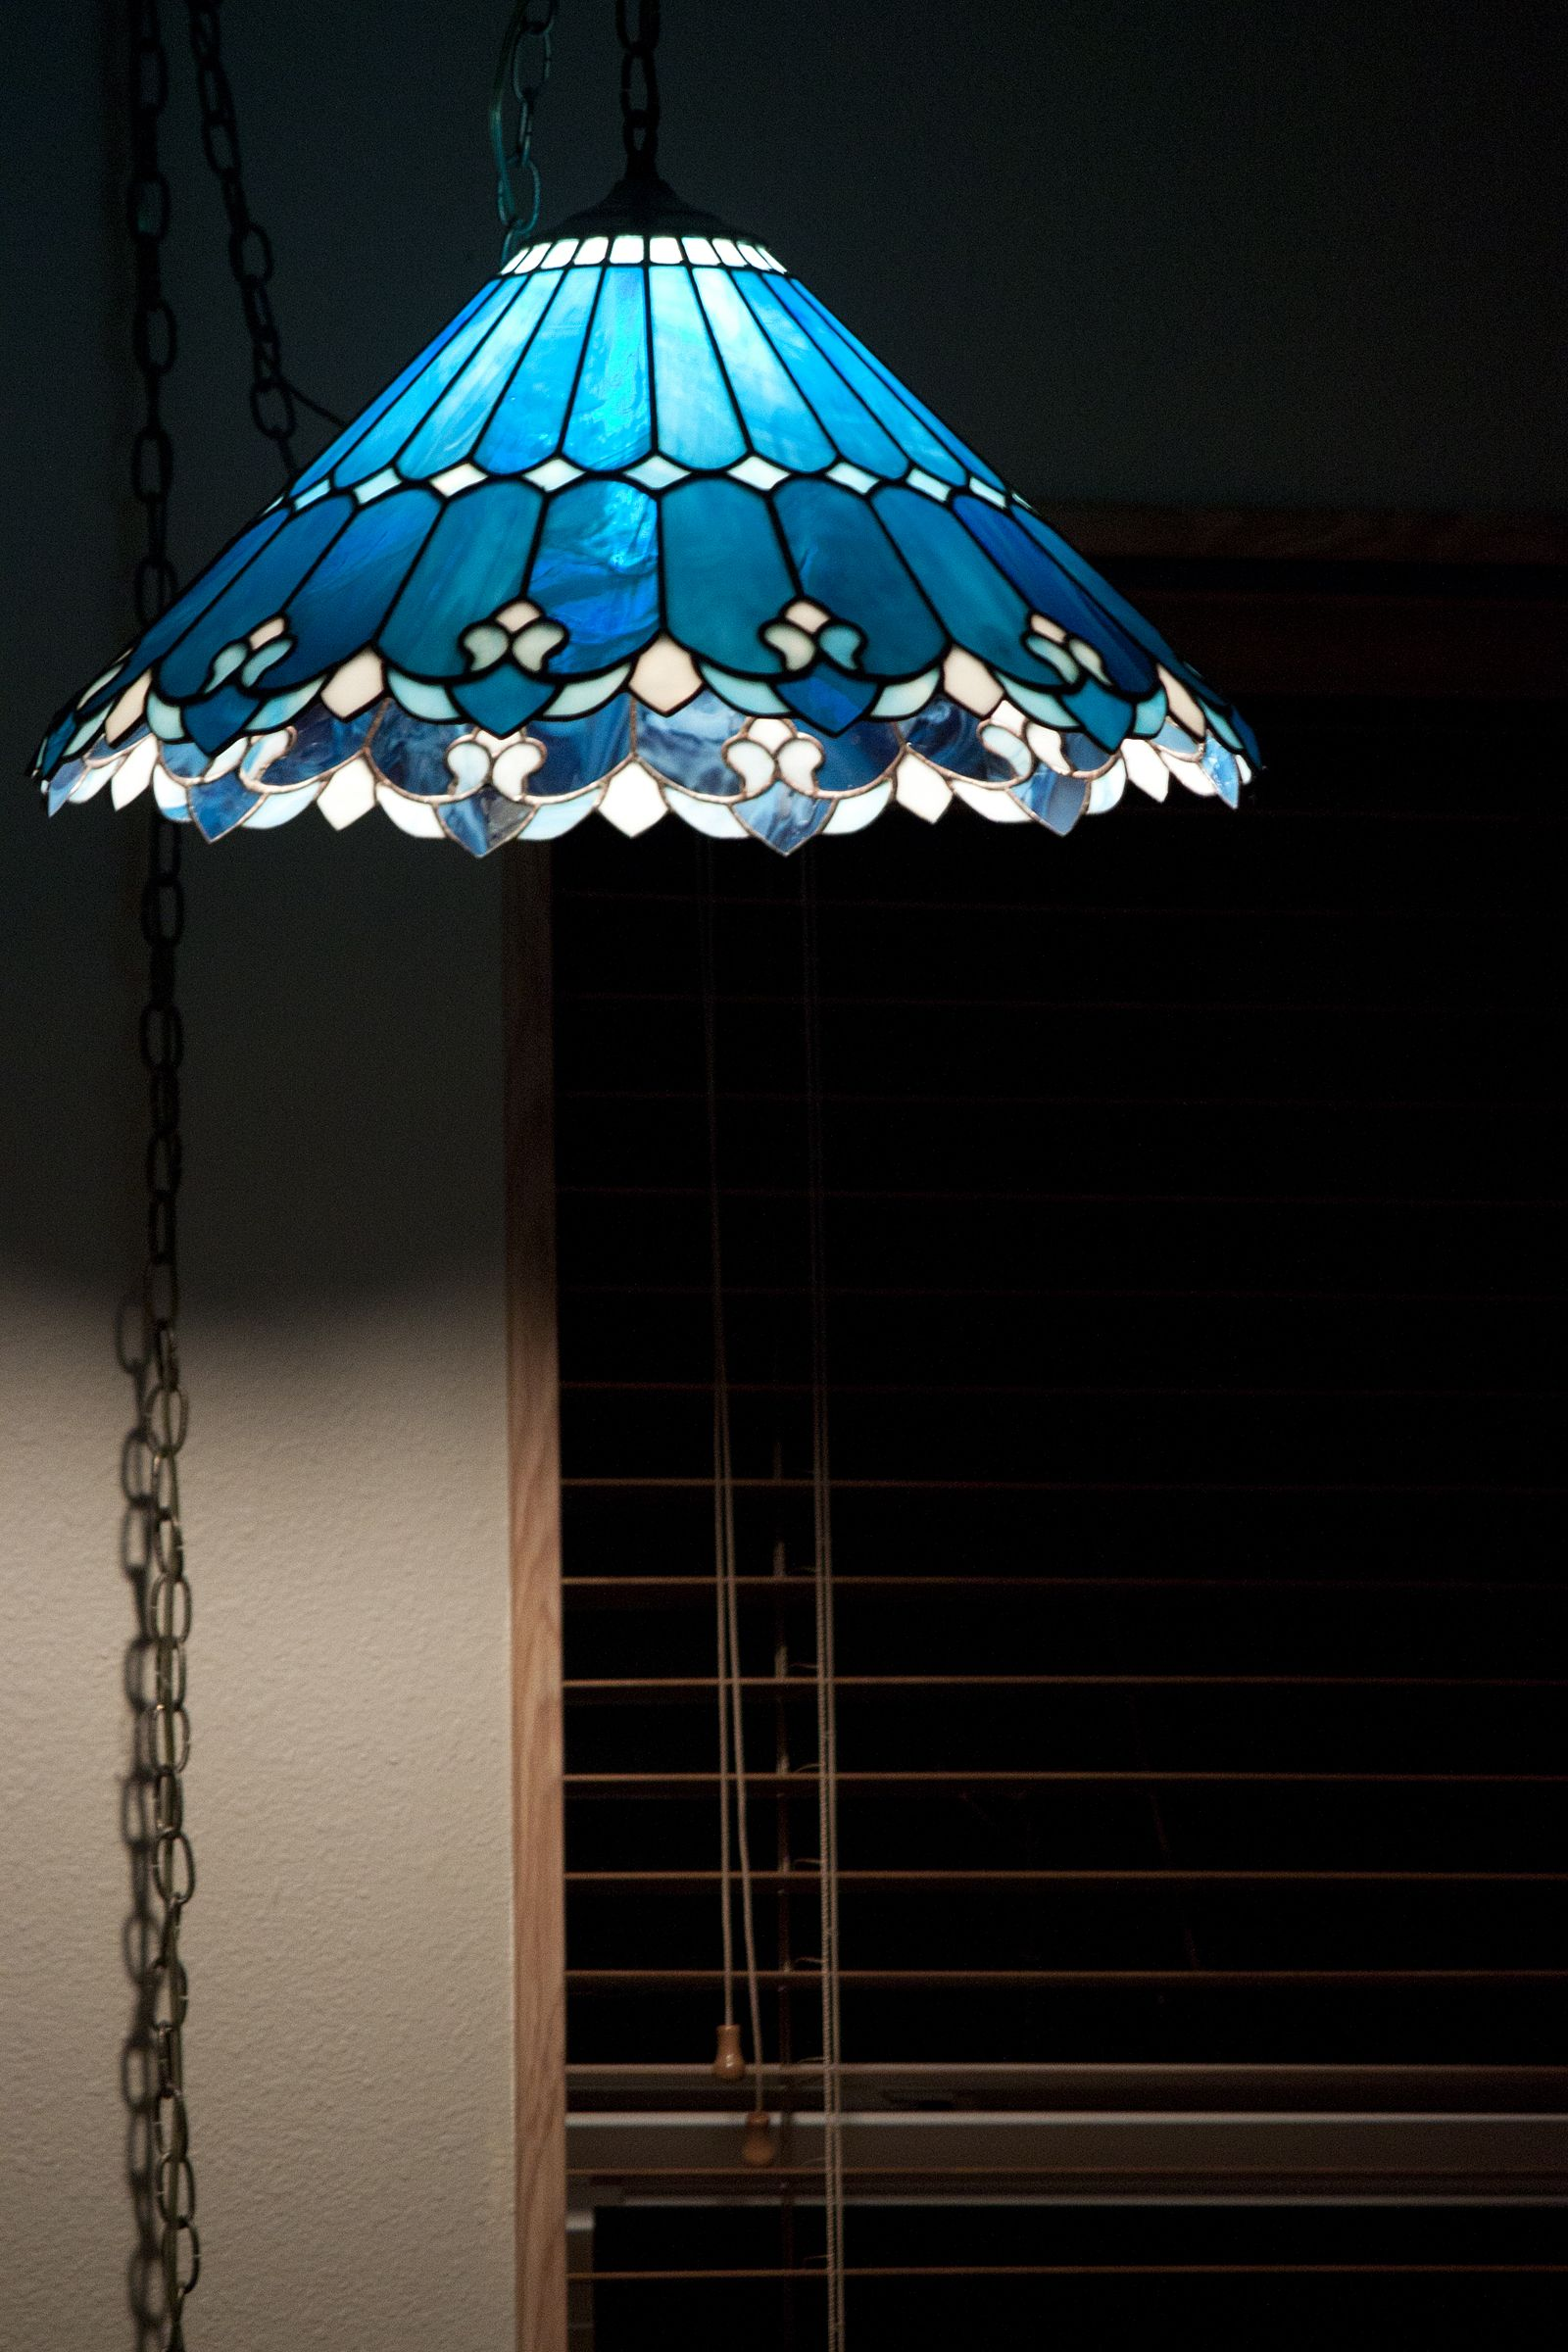 Day 41 – Tiffany Lamp